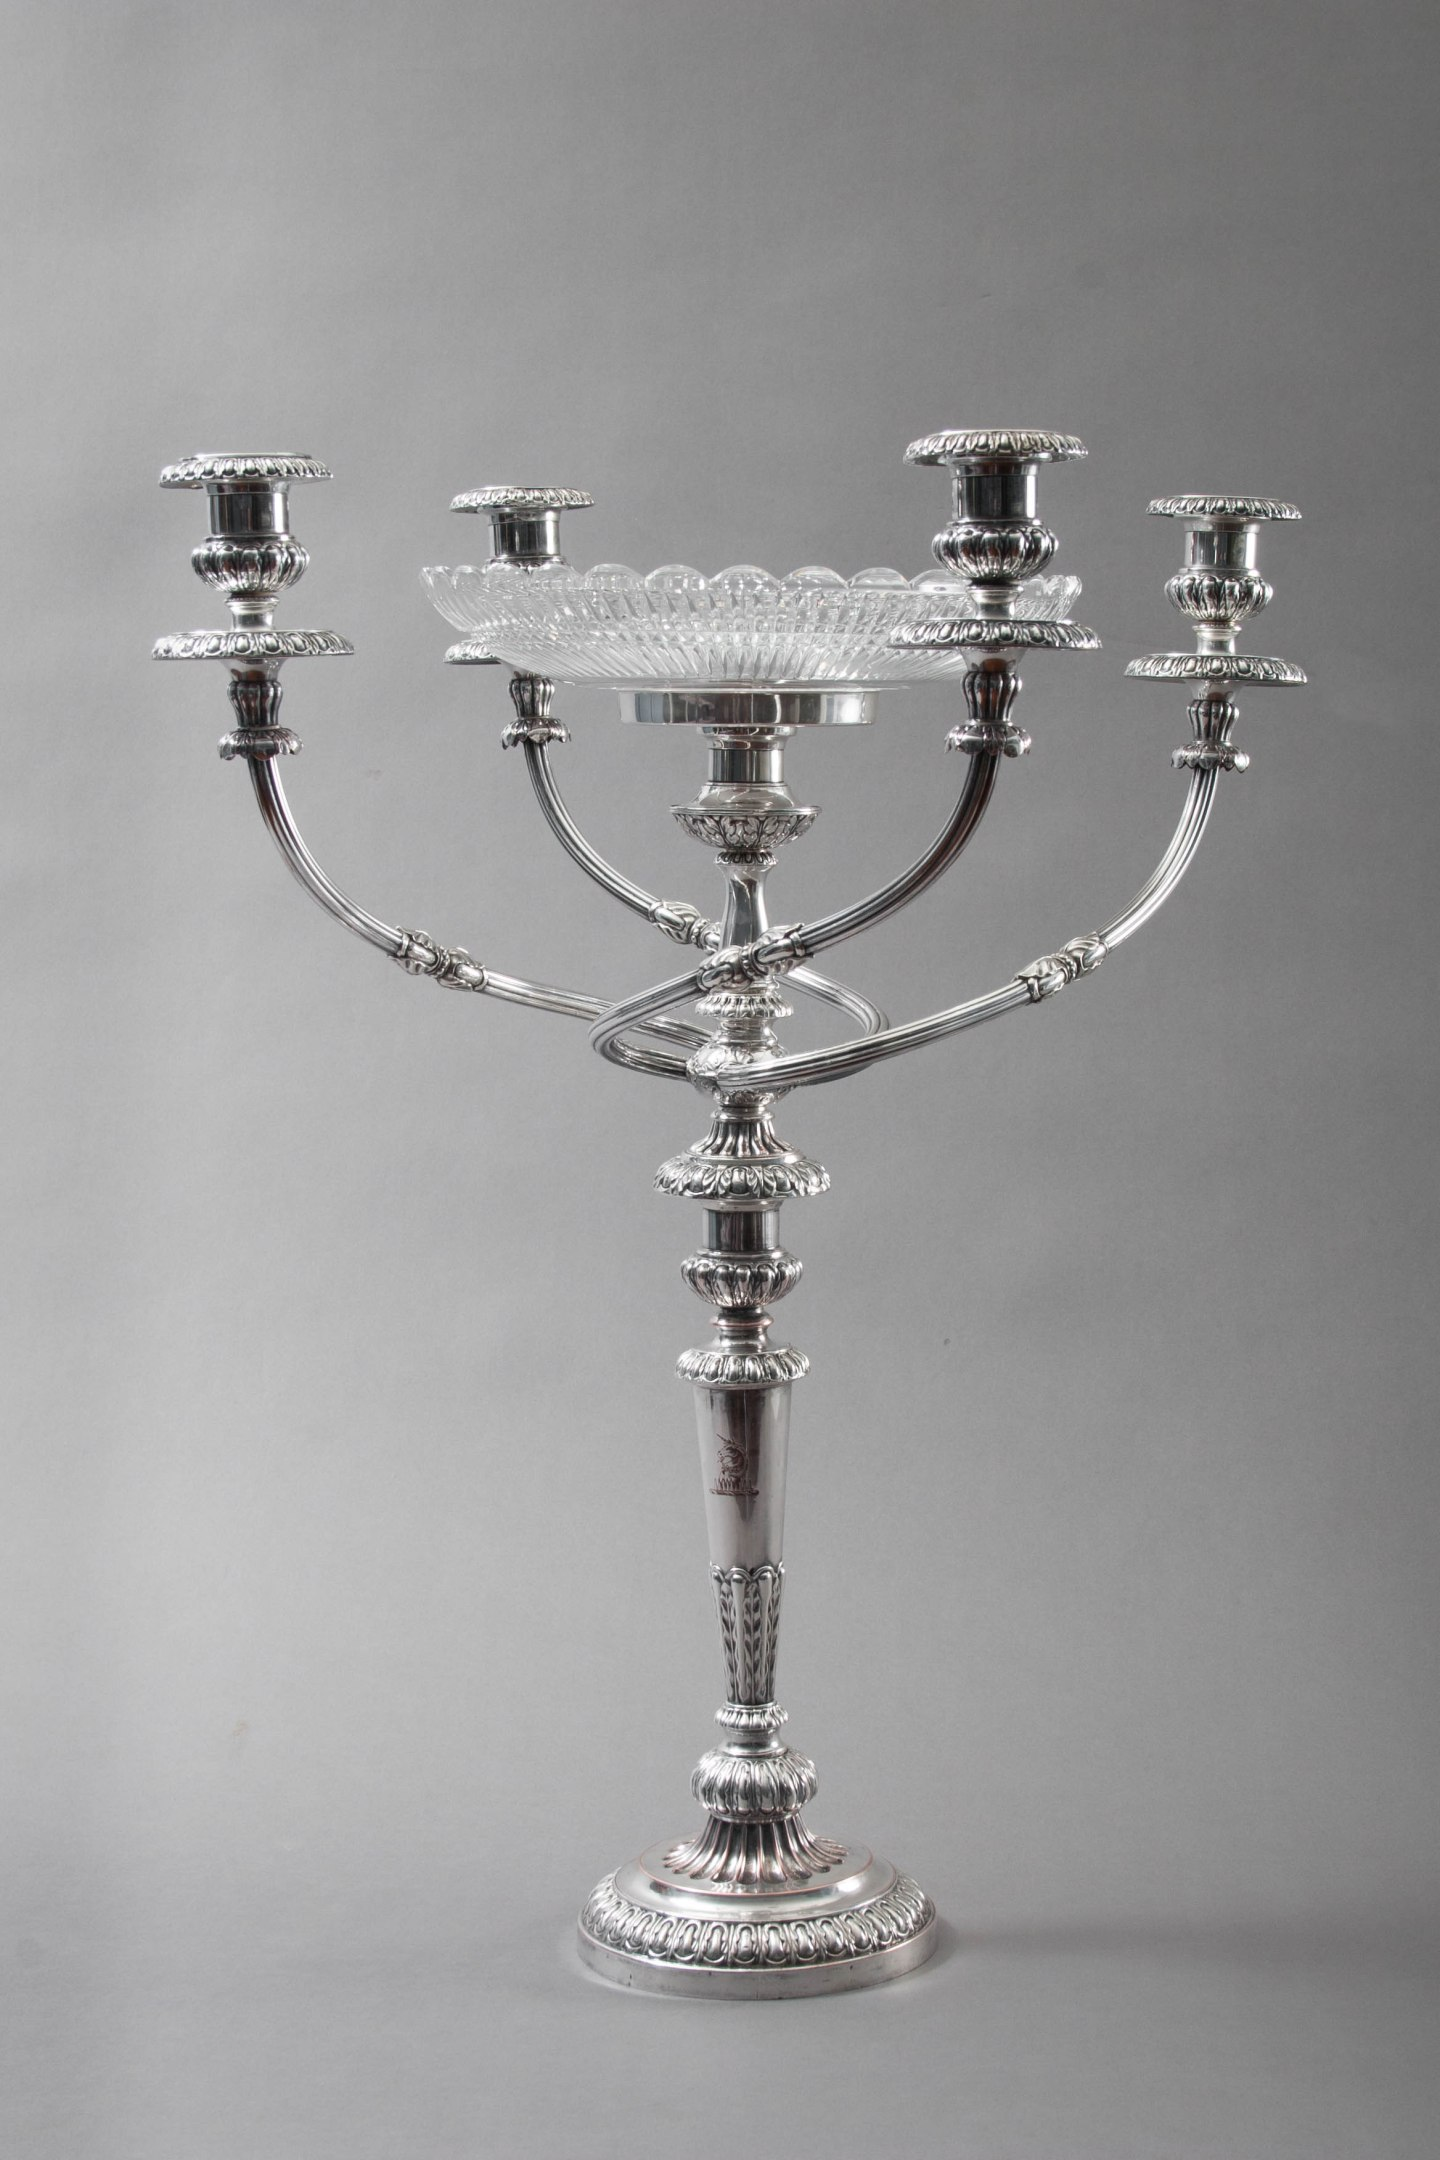 Sheffield Silver Candelabra by Matthew Boulton